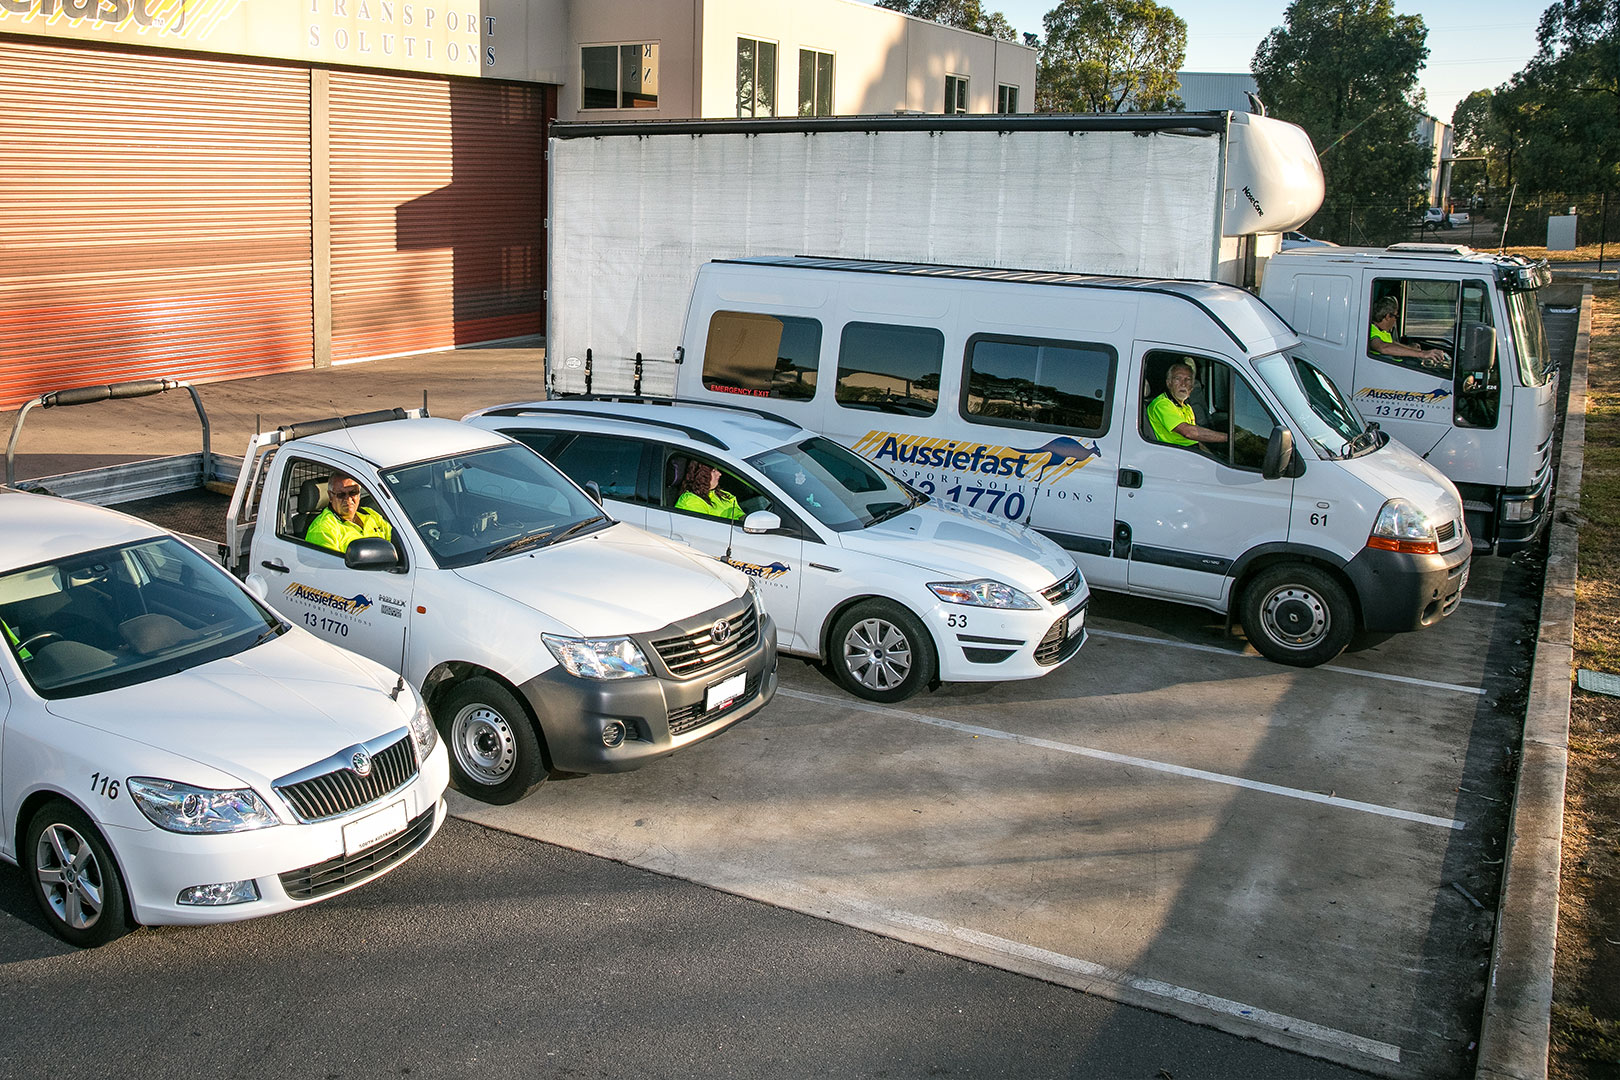 Aussiefast Courier Vehicles